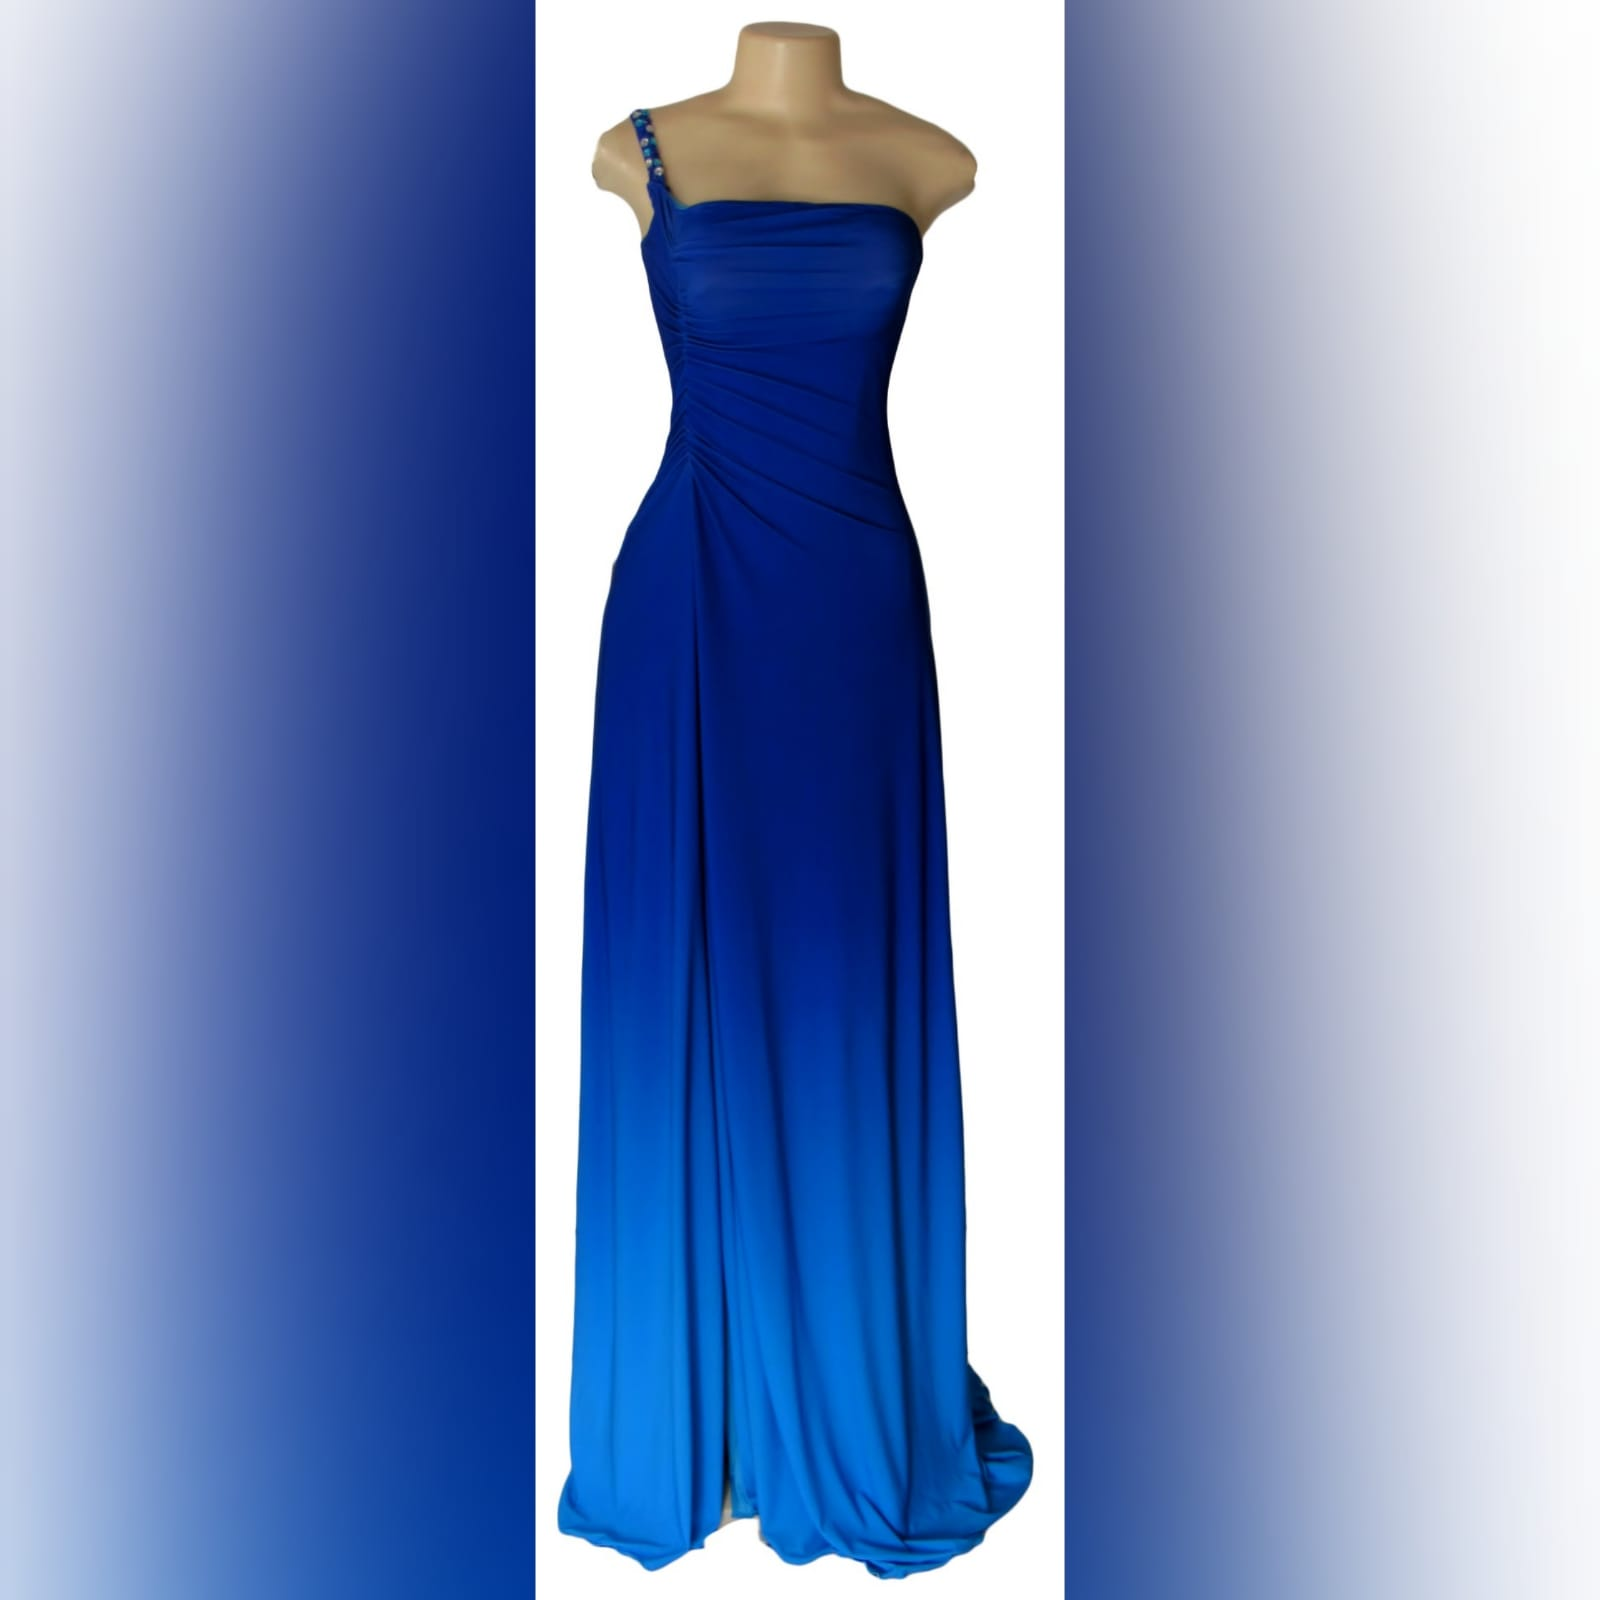 Blue ombre maid of honour dress 3 blue ombre maid of honour dress with a single beaded/bling shoulder design.